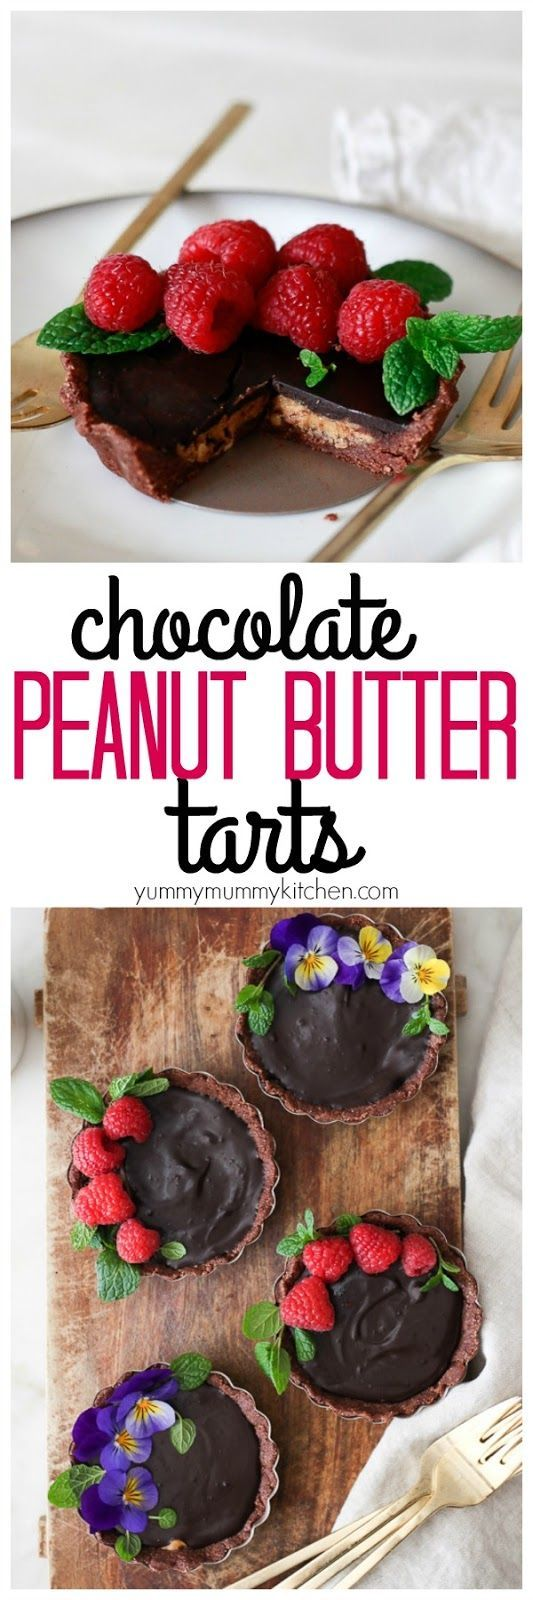 No Bake Chocolate Peanut Butter or Almond Butter Tarts. These rich and delicious tarts are vegan, gluten free, and paleo friendly! This easy recipe makes the most beautiful and delicious dessert for Valentine's Day, Mother's Day, or any occasion! #vegan #glutenfree #paleo